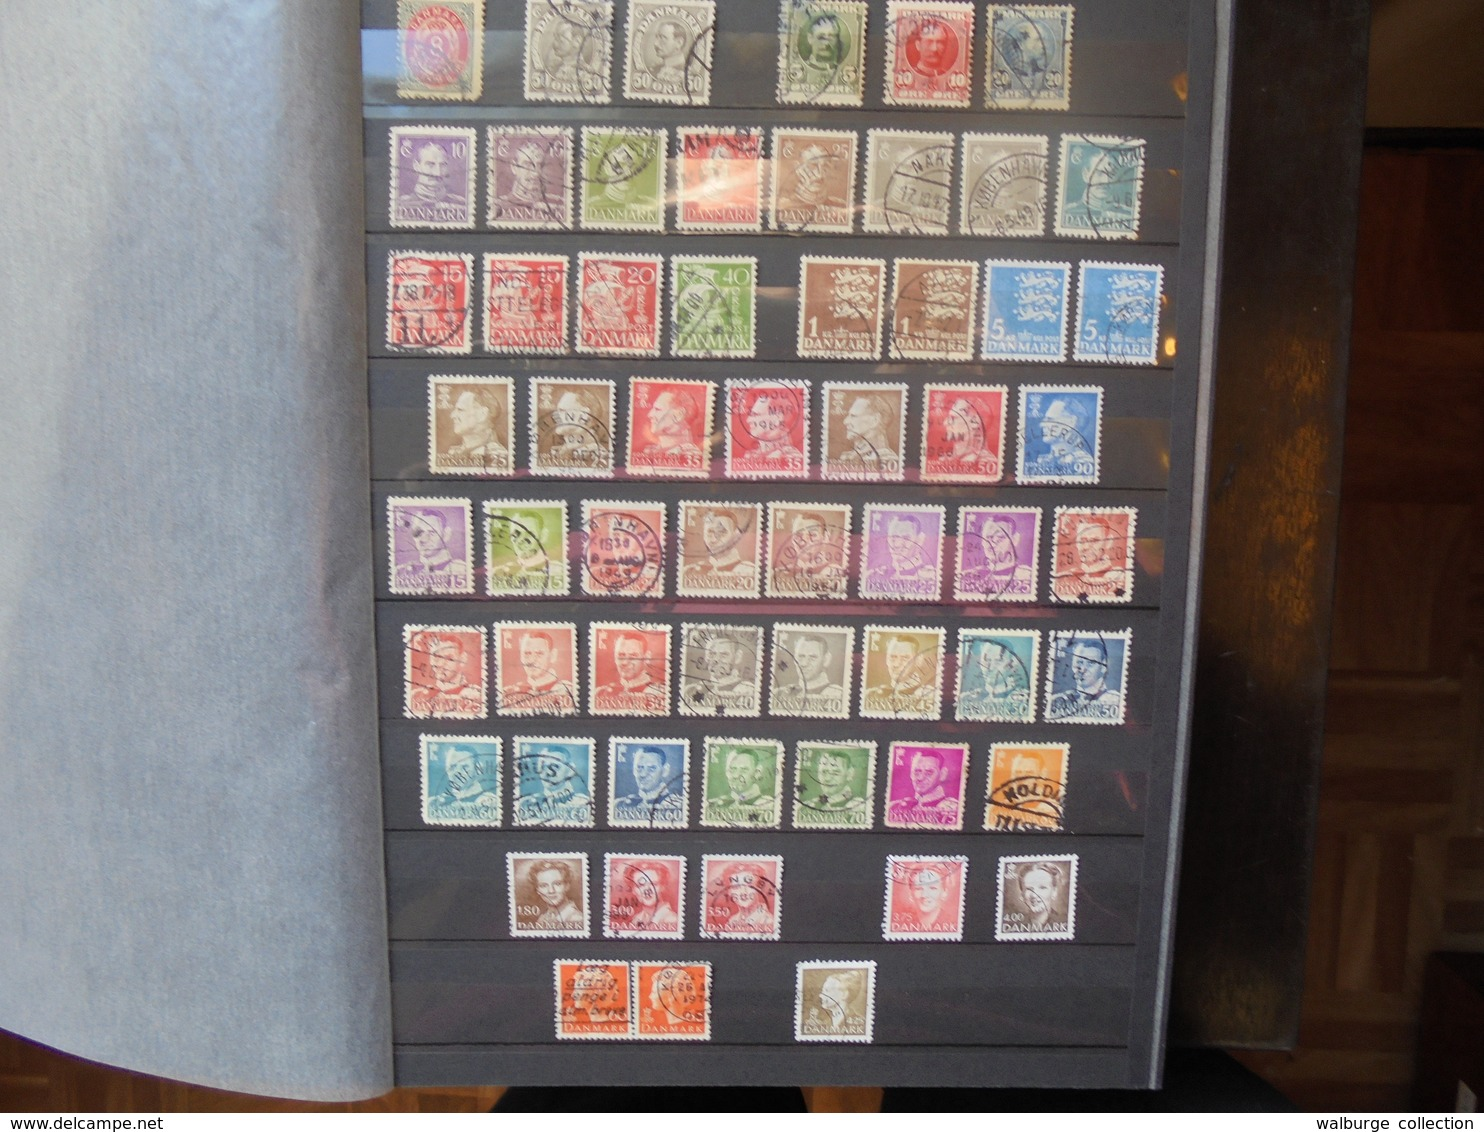 EUROPE/MONDE BELLE COLLECTION CLASSEE ET VARIEE (2377) 1 KILO 900 - Timbres